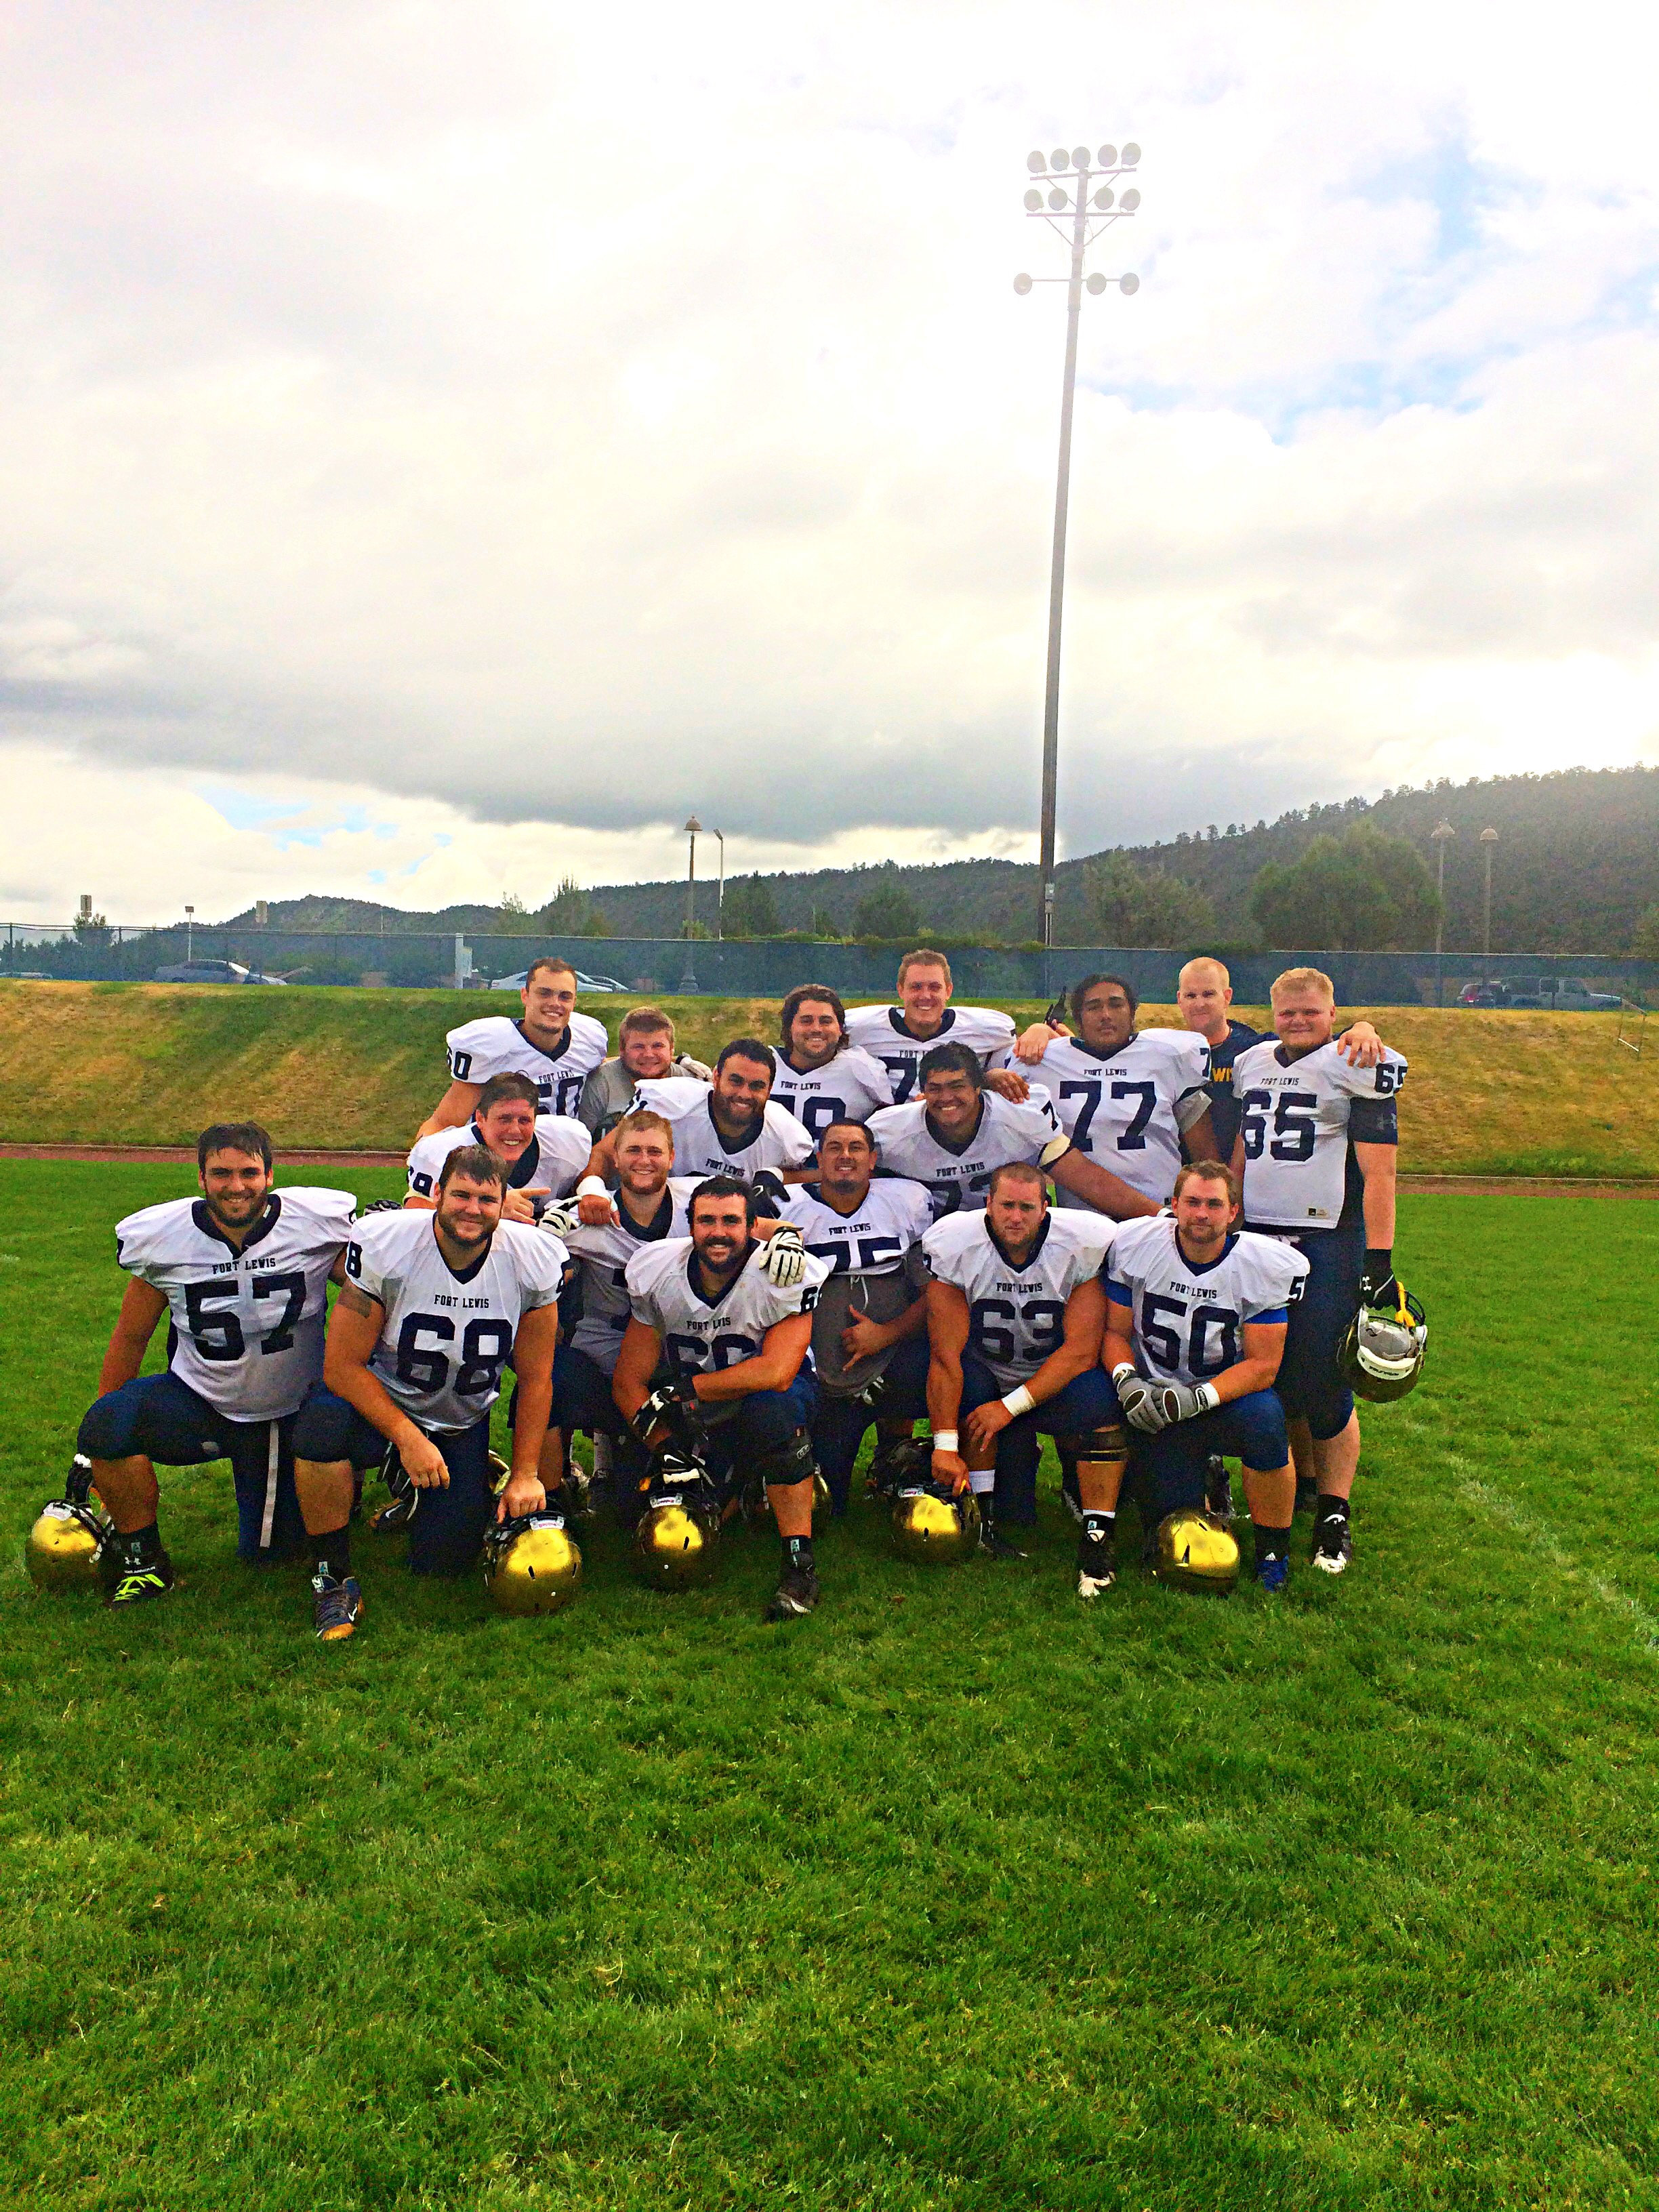 Fort Lewis College - Football Season About to Kick Off ...